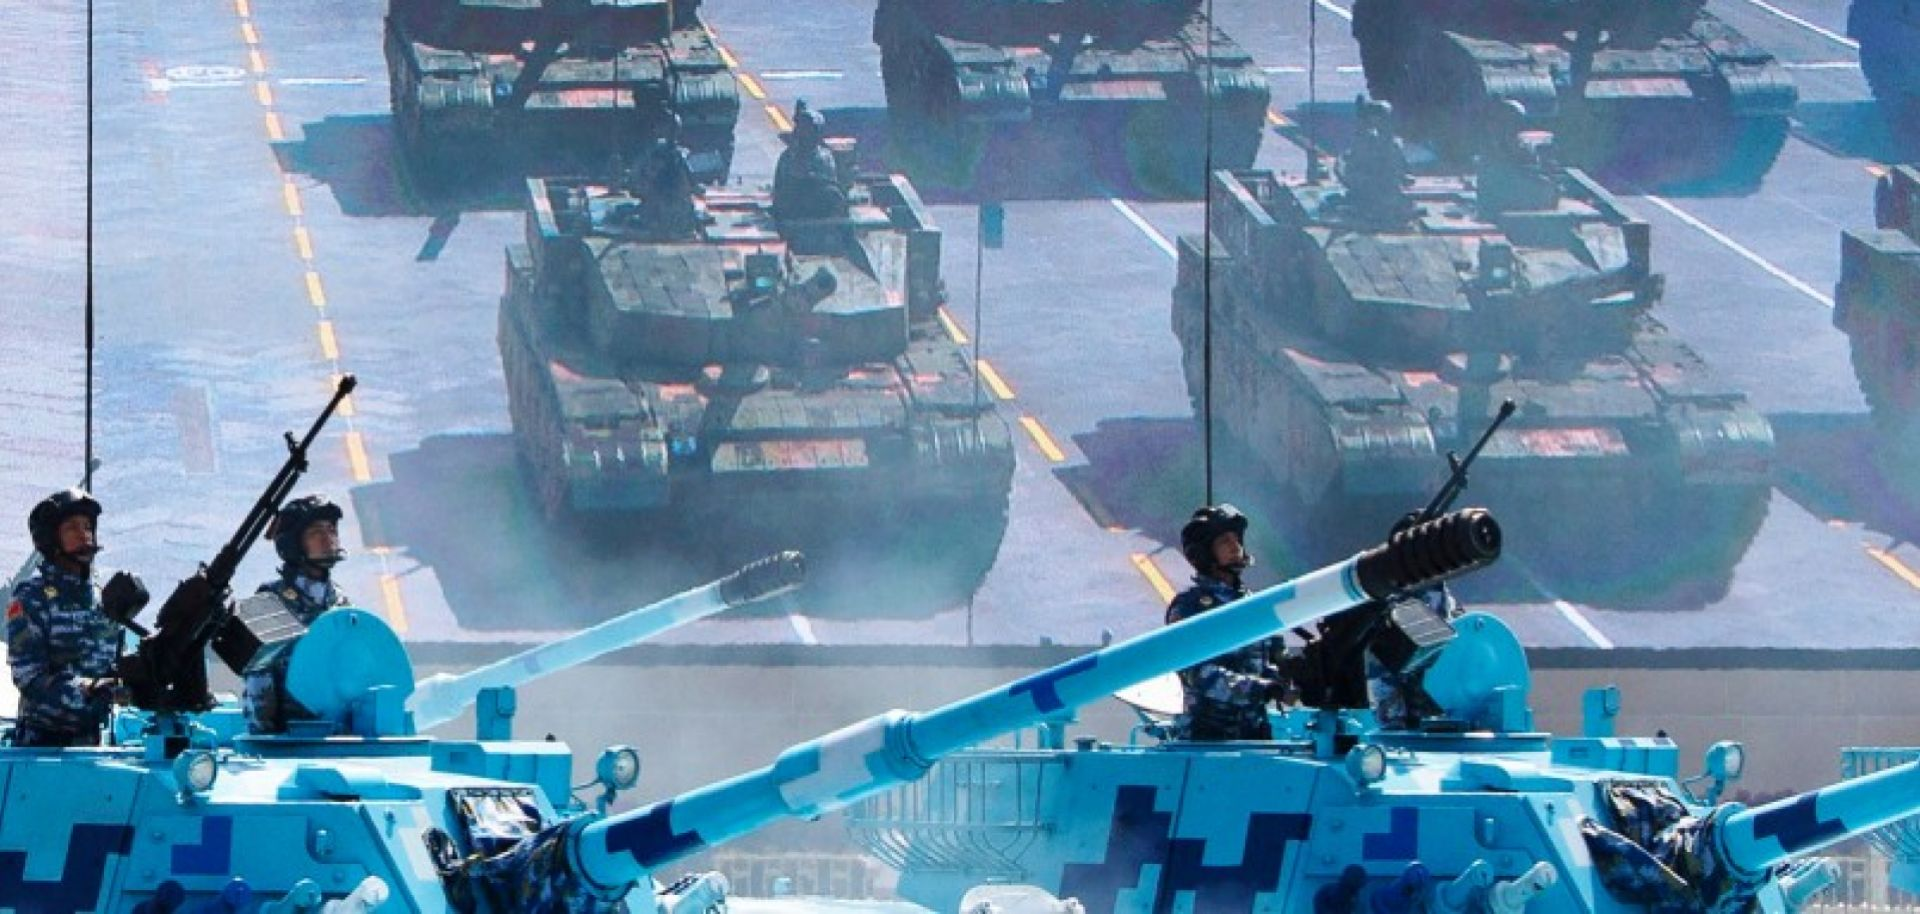 Taking a cue from the United States, China is hoping military reorganization will be the key to increasing its capabilities.